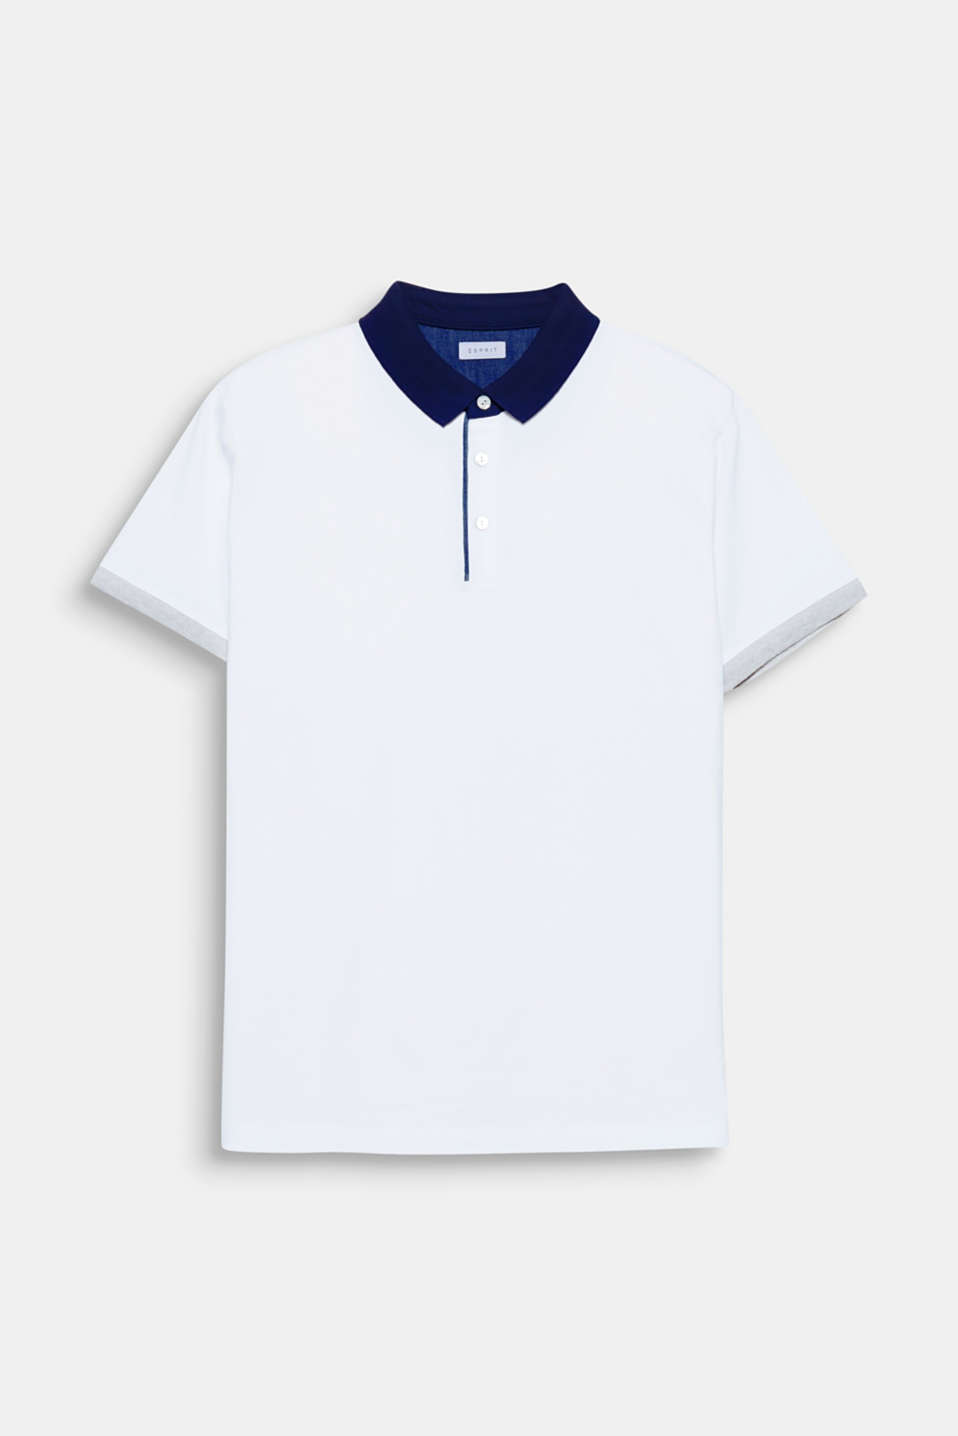 The contrasting colour collar and sleeve cuffs give this polo shirt a modern colour block look.